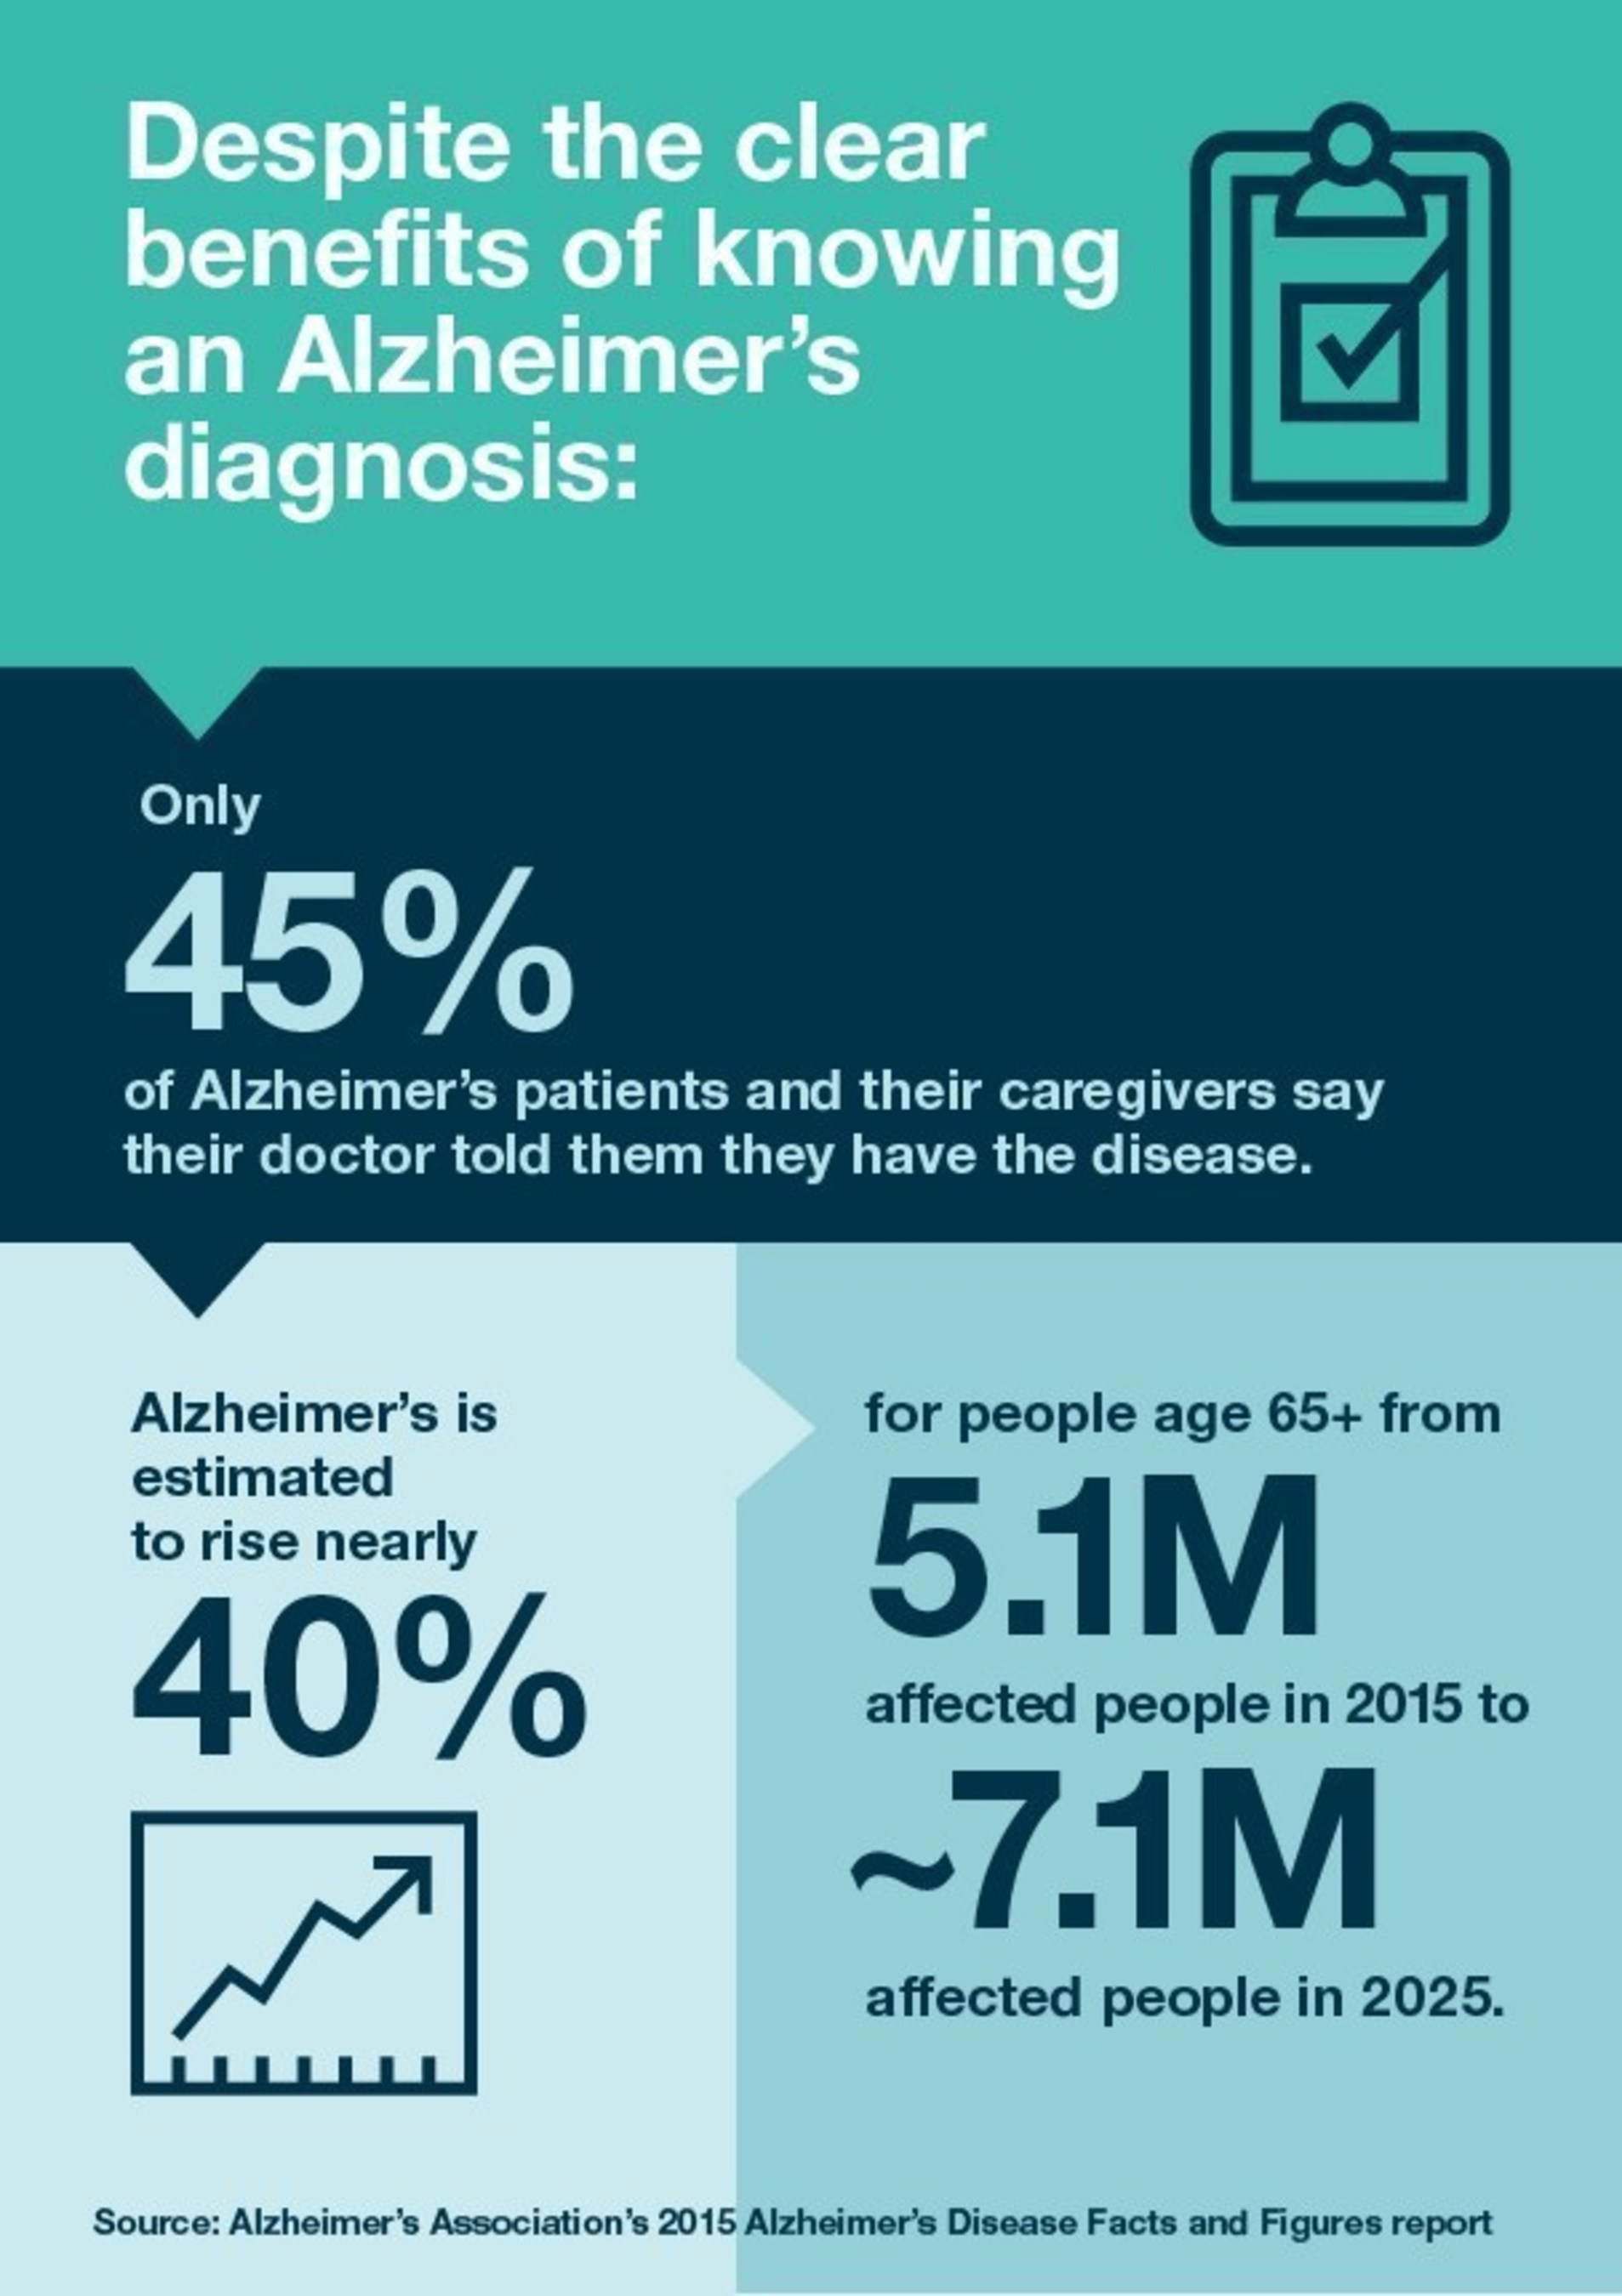 Despite the clear benefits of knowing an Alzheimer's diagnosis, only 45 percent of Alzheimer's patients  ...